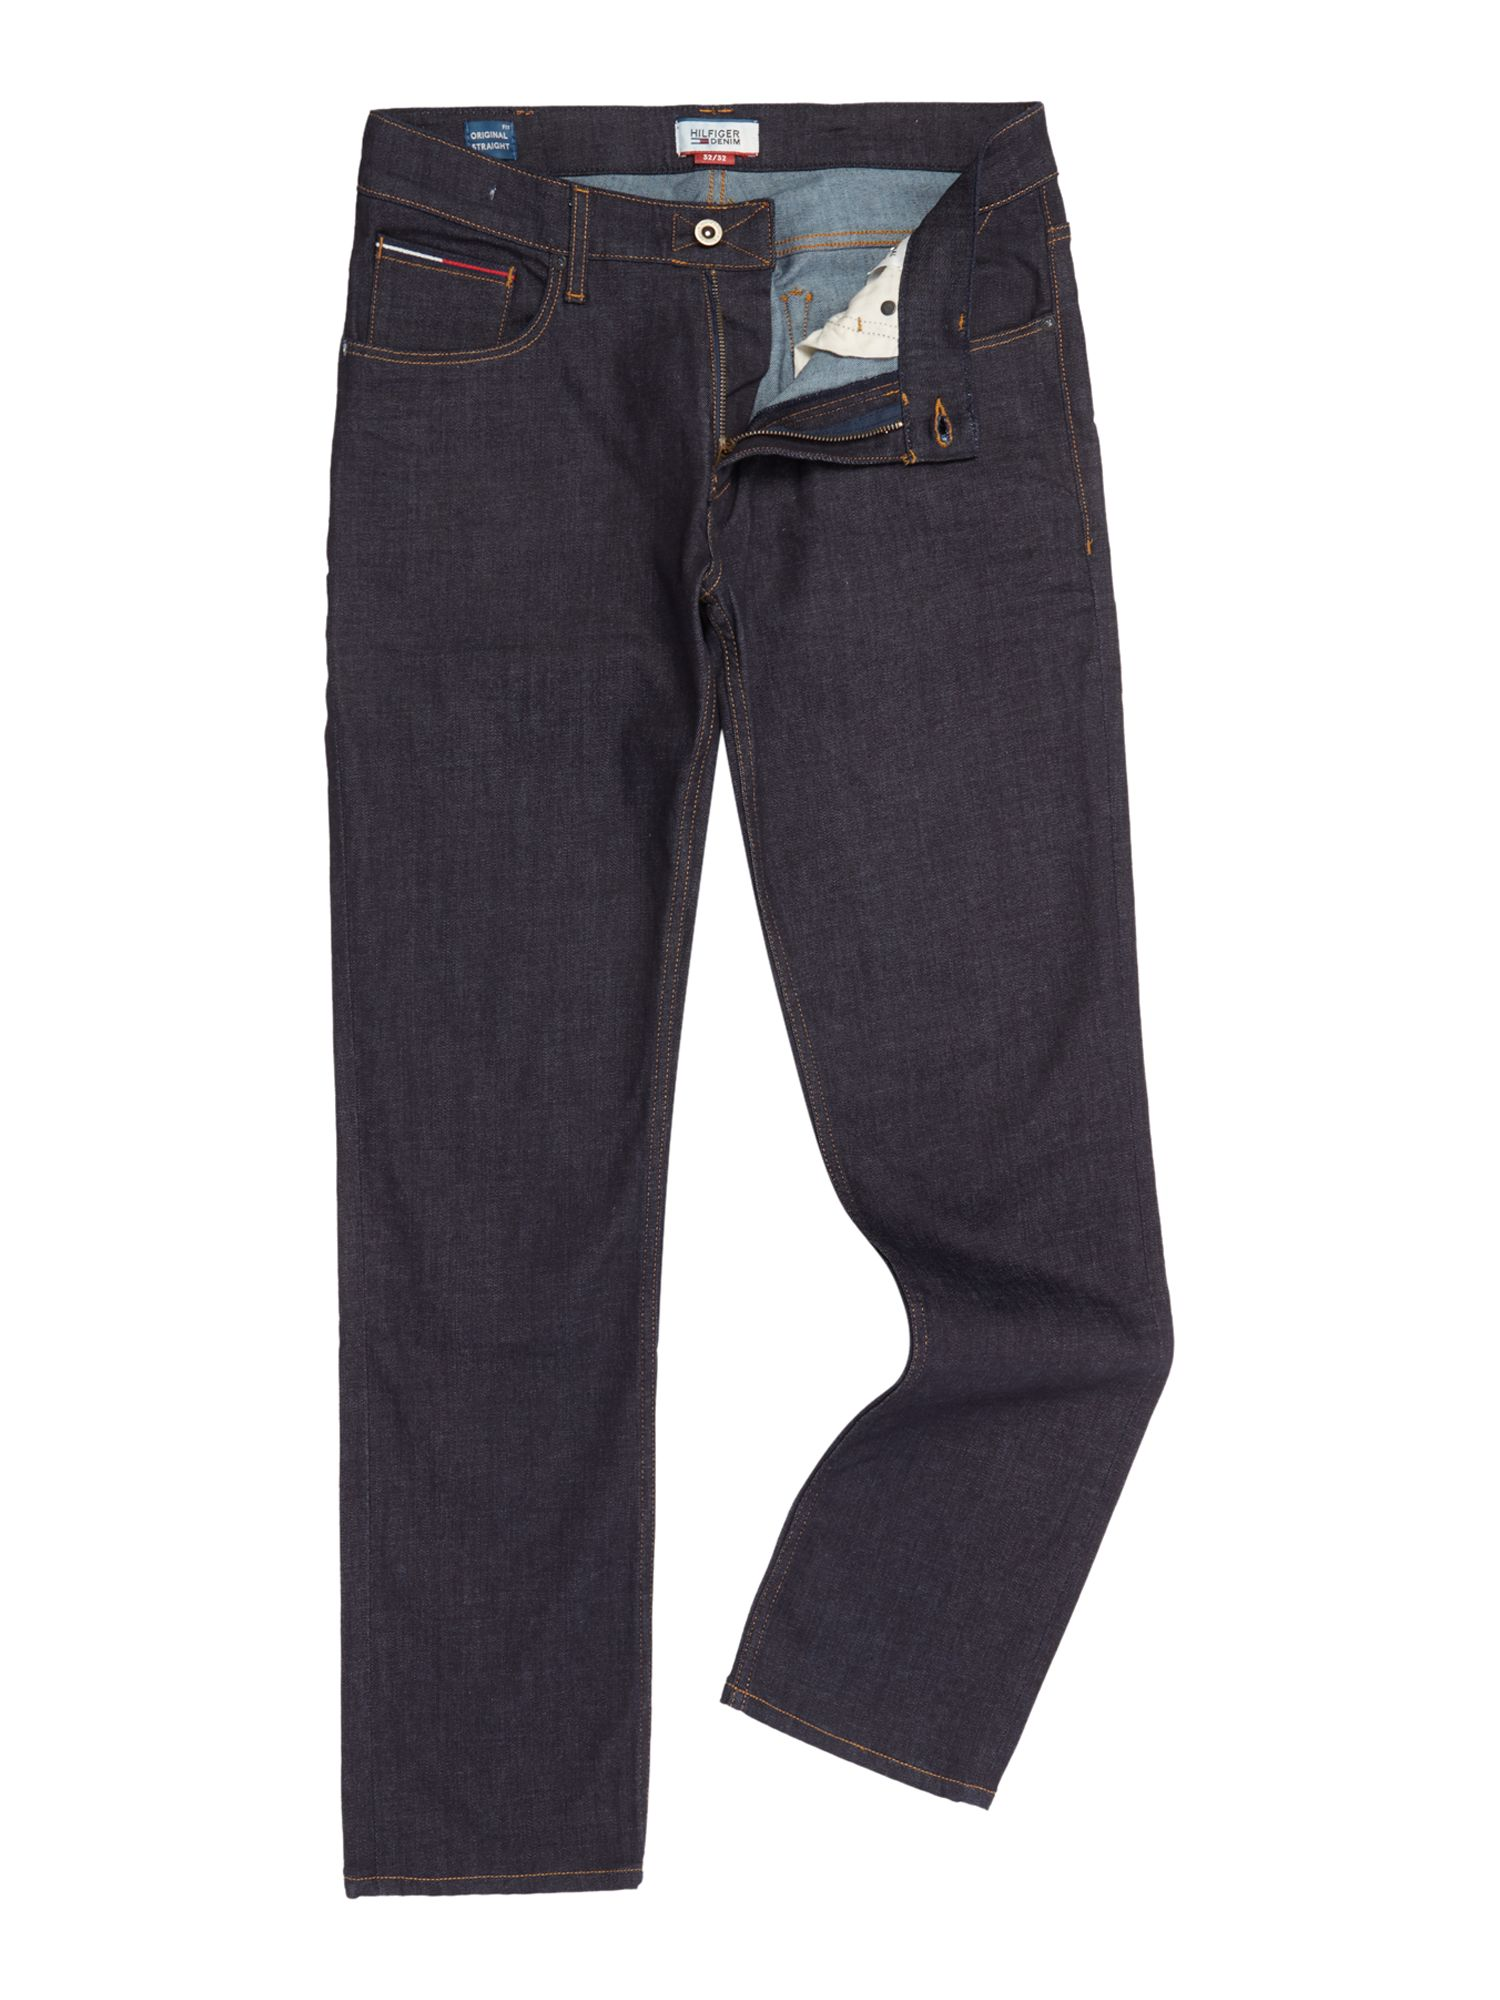 Mens Ryan Original Straight Jeans, Indigo